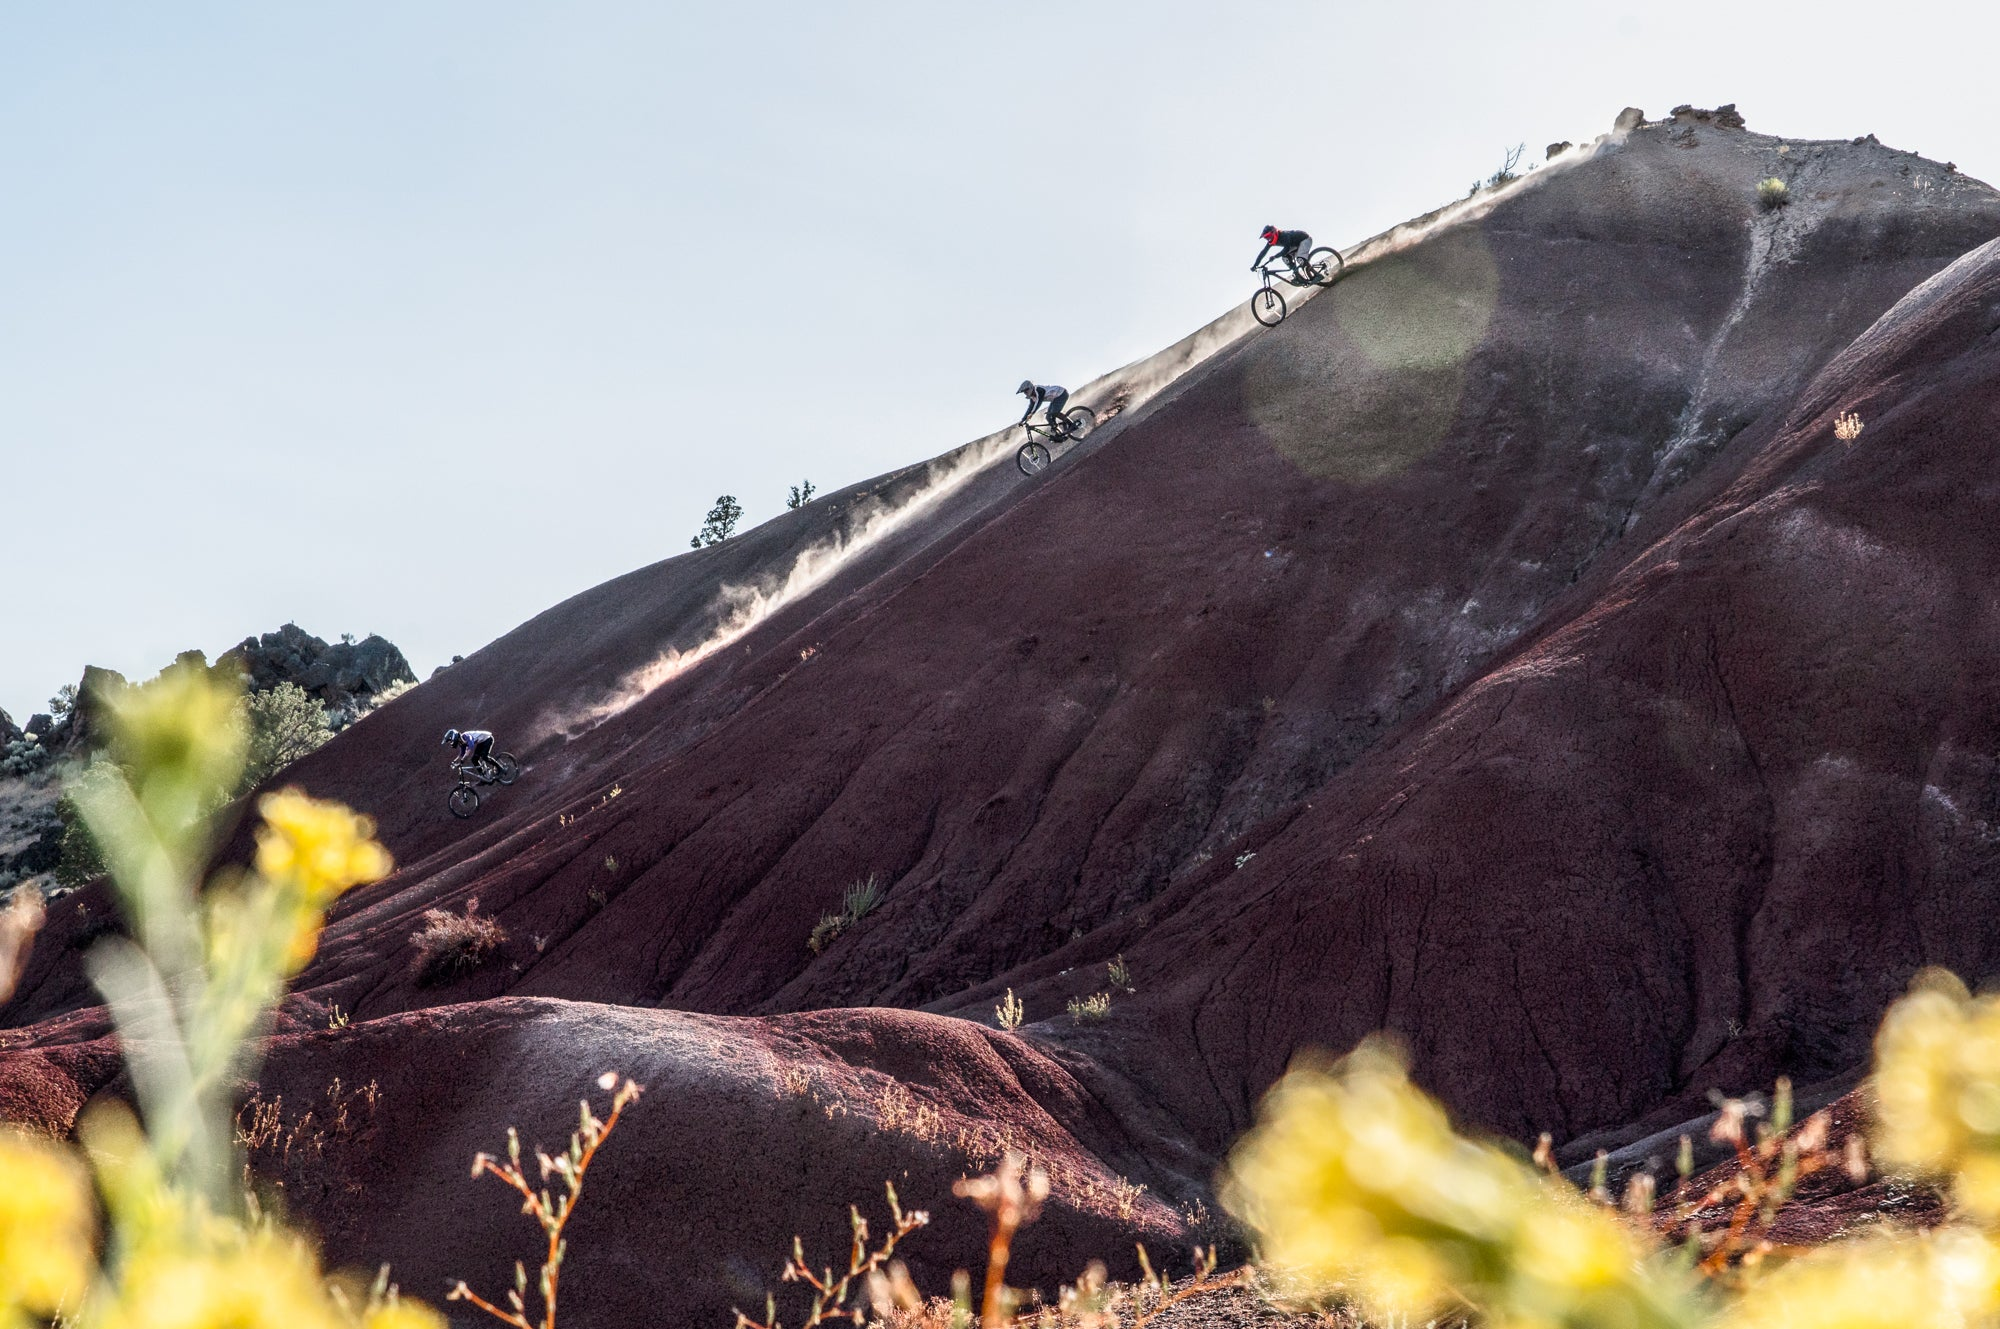 Multiple Mountain Bikers Riding Down a Mountain Spine